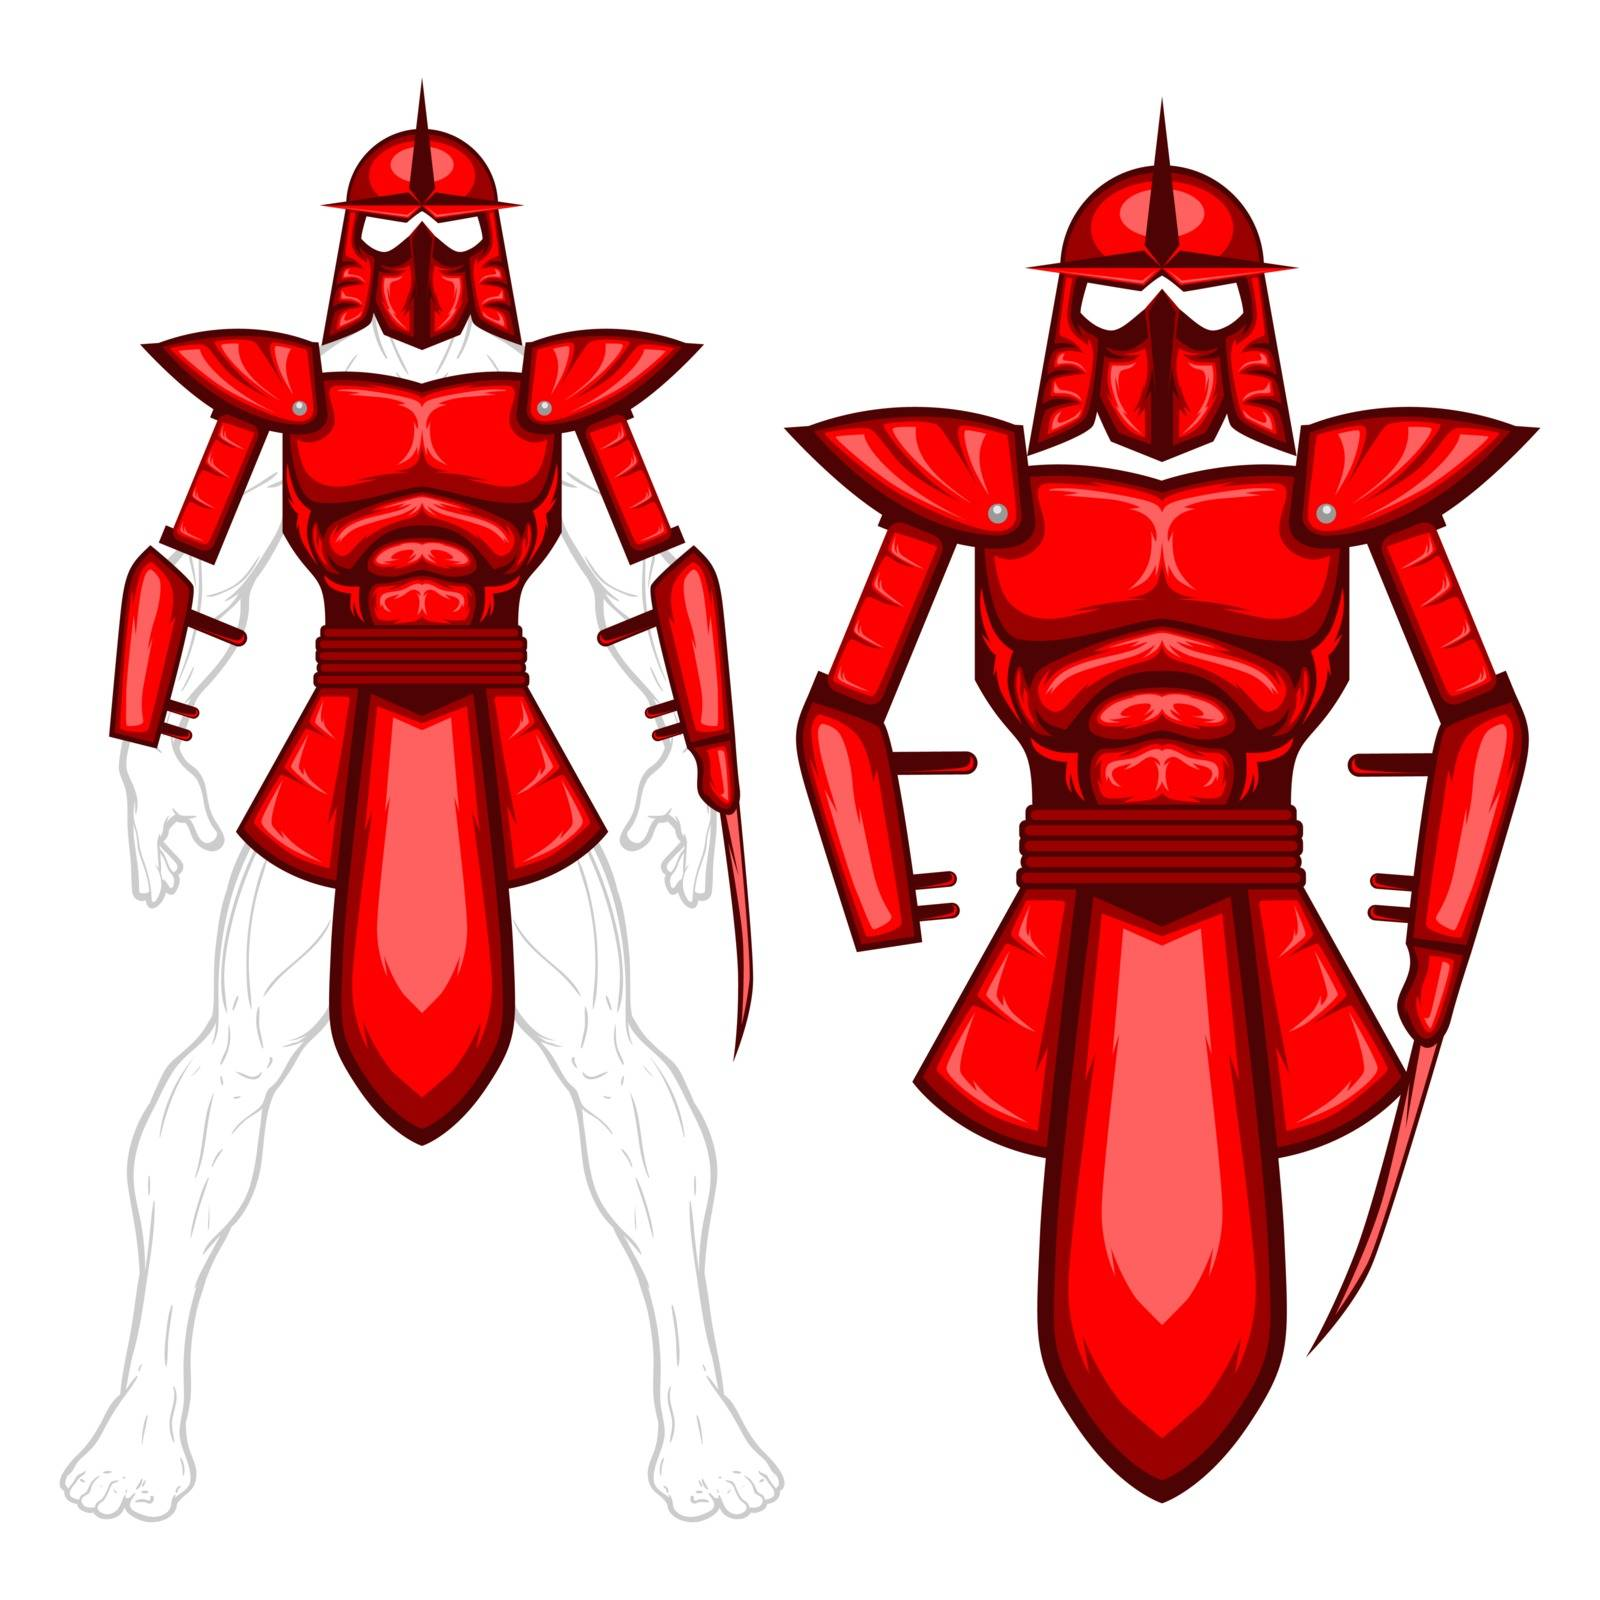 An armor design that can be a papercut toys